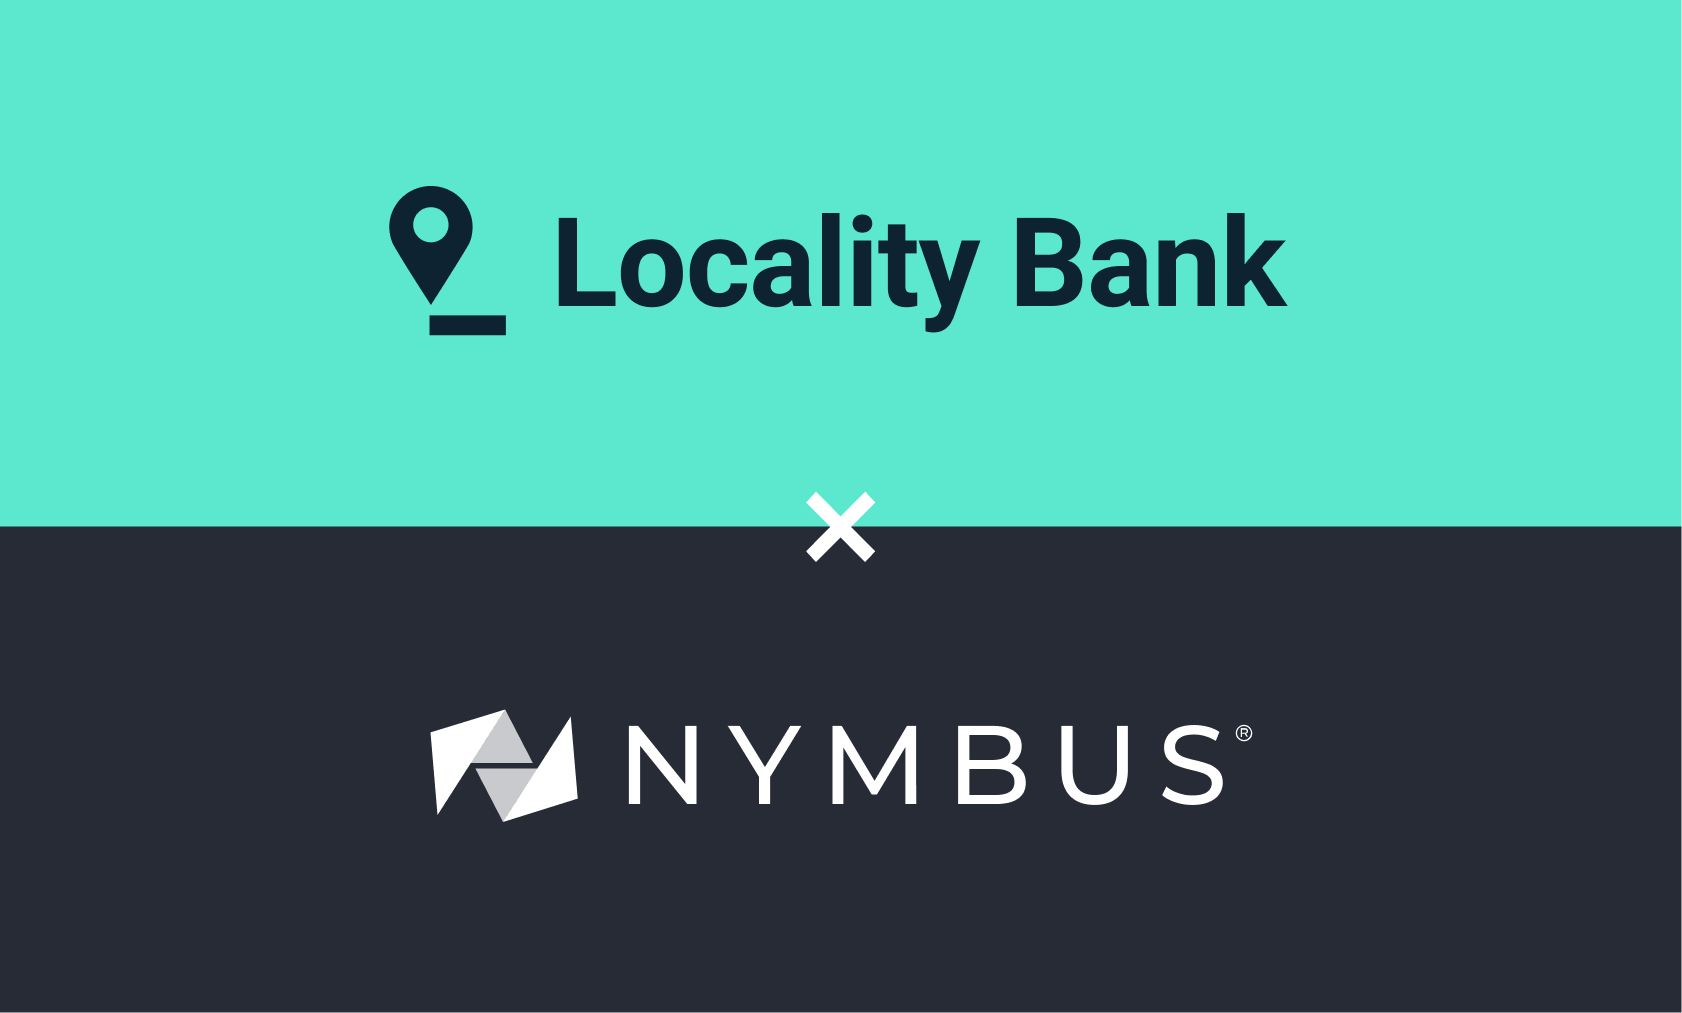 Locality-Bank-Nymbus.png